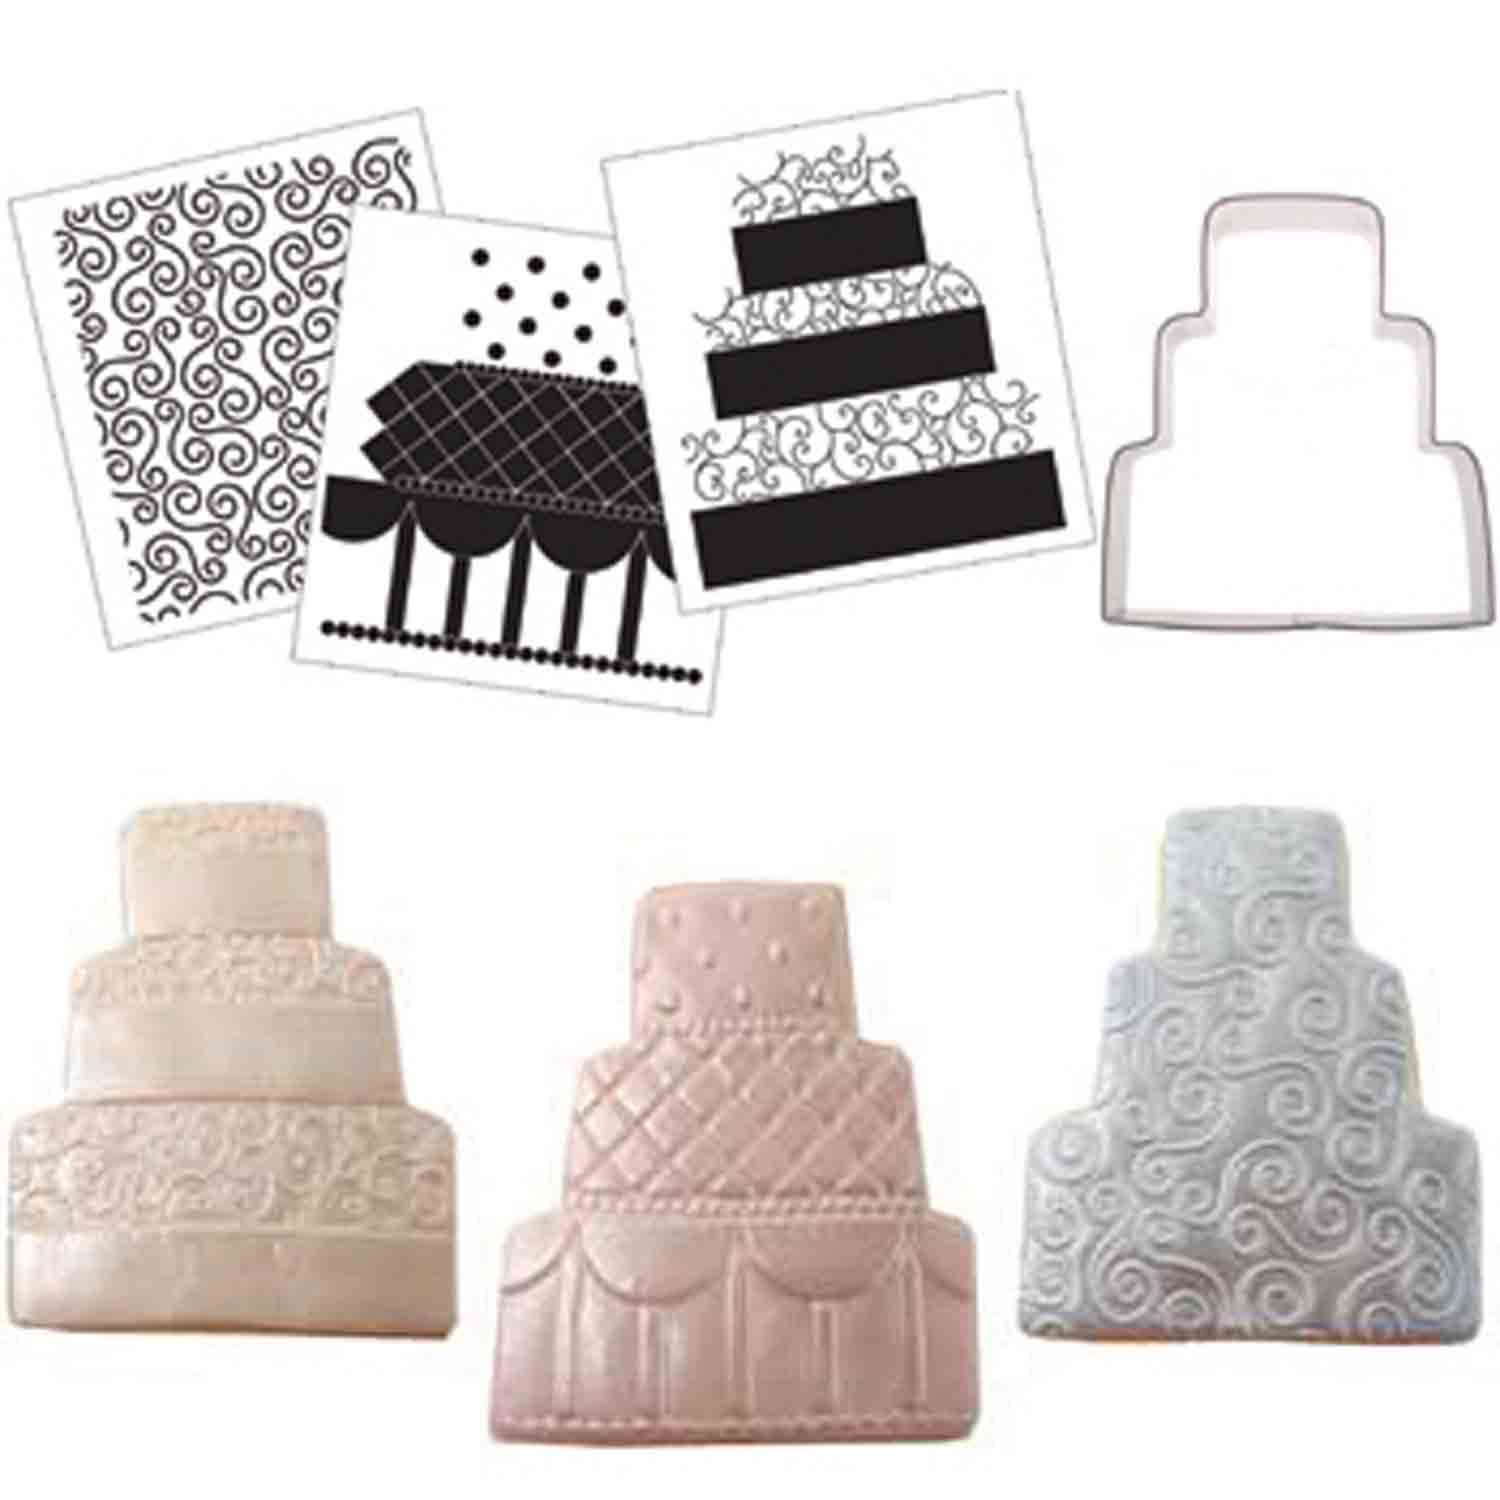 Cookie Cutter and Cupcake Texture Sets